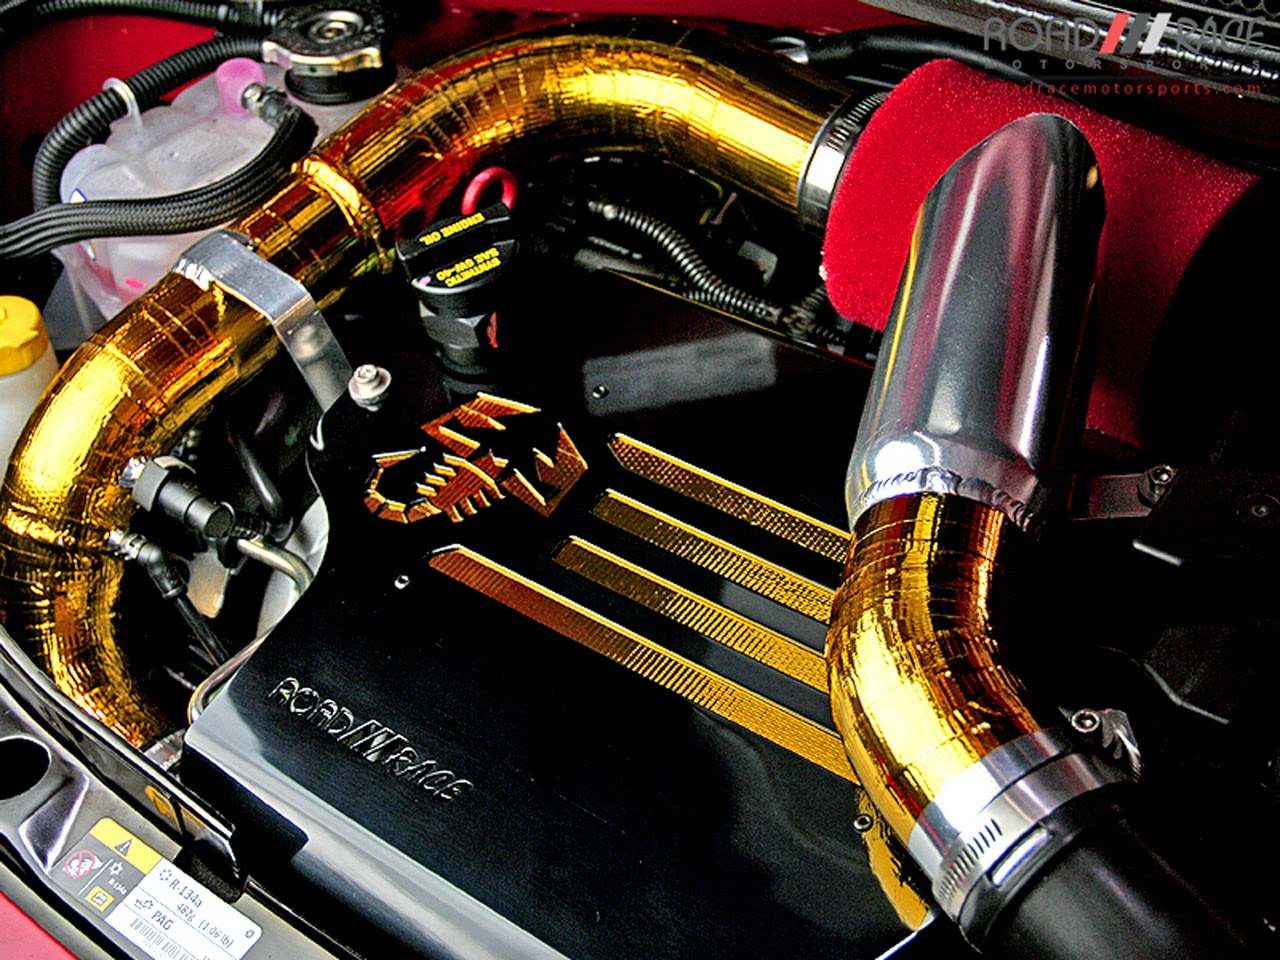 Road Race Motorsports turbo Abarth engine